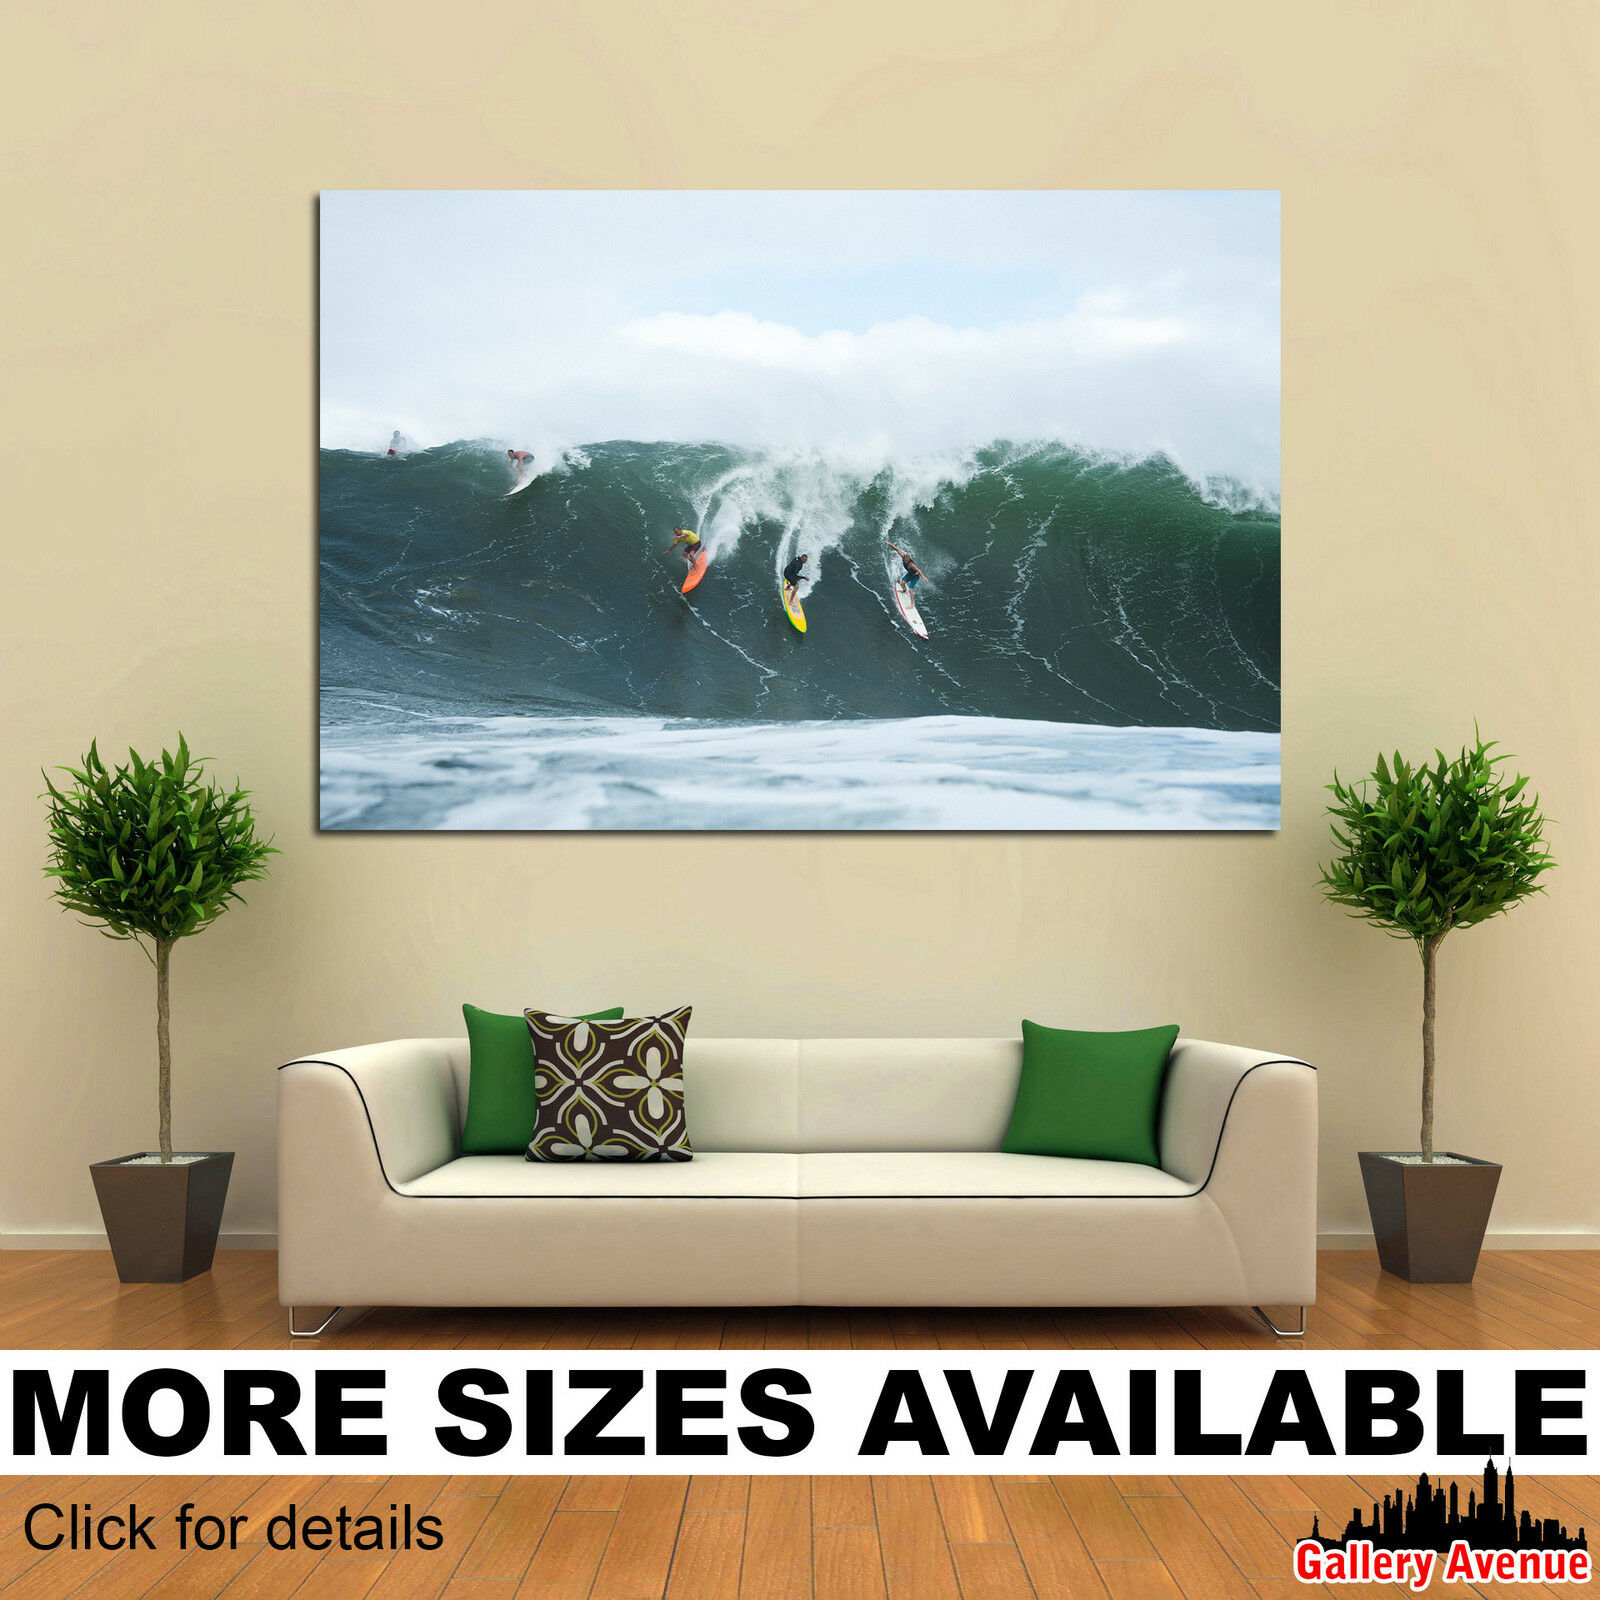 Wall Art Canvas Picture Print - Surfers on Wave Surfing 3.2